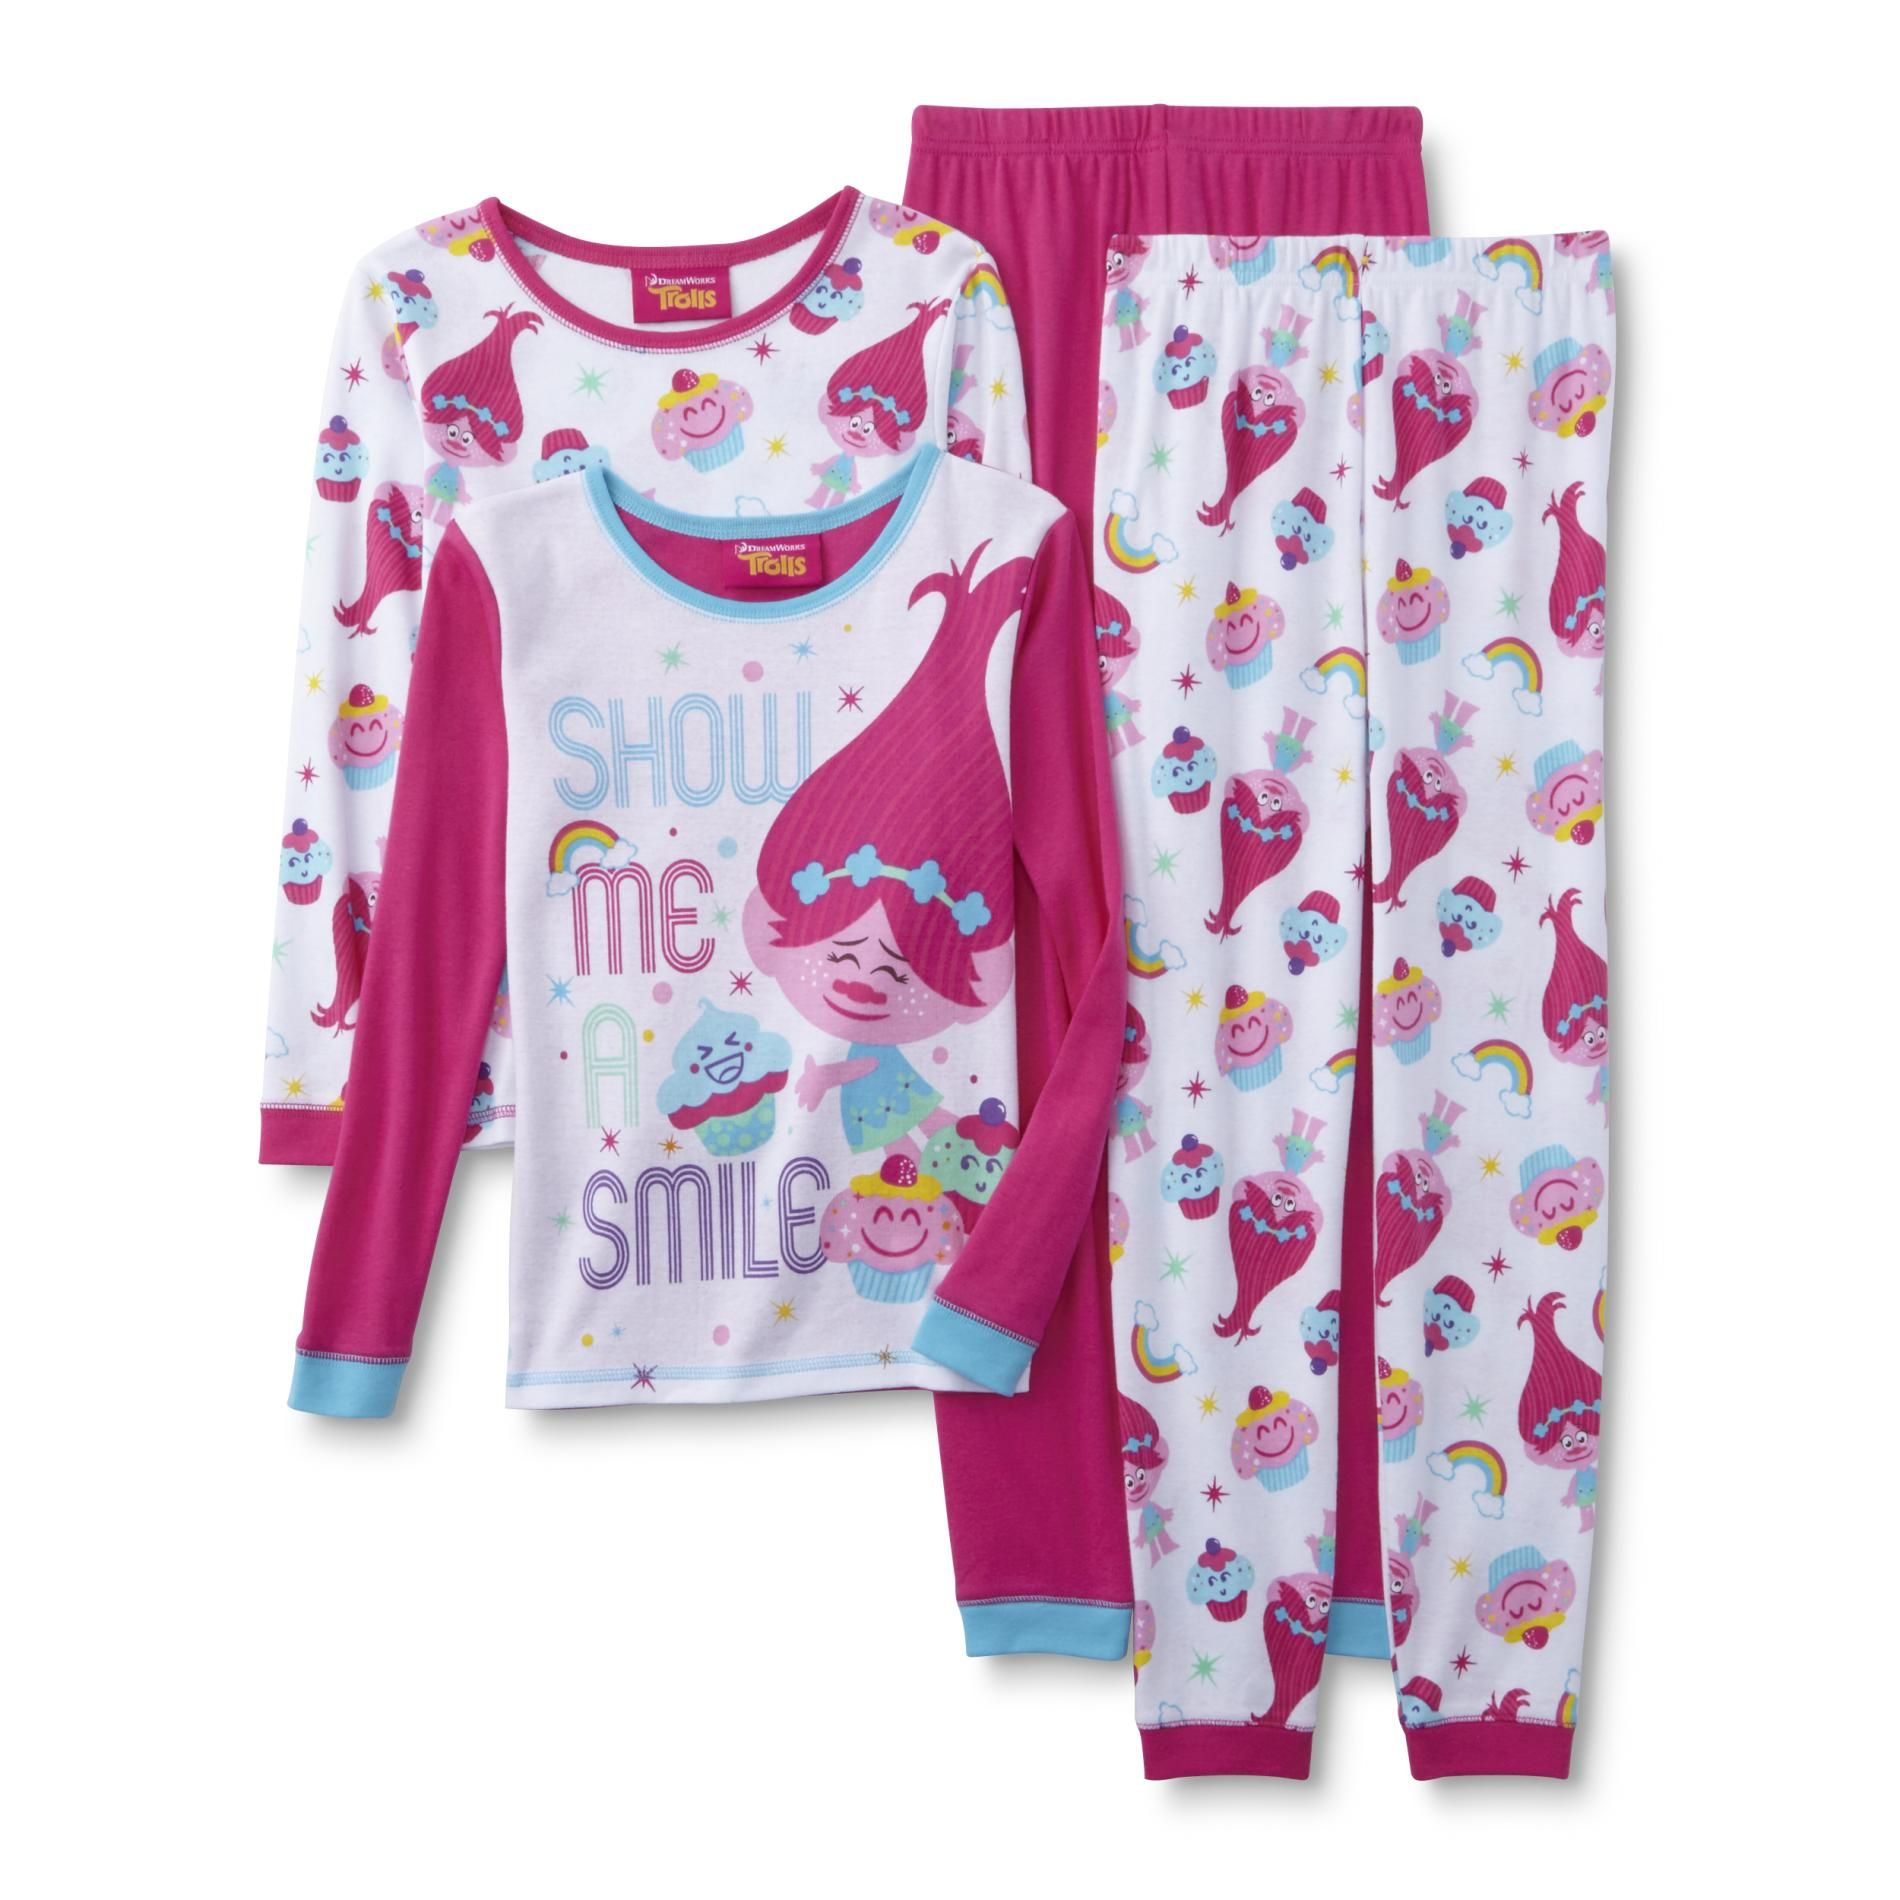 Dreamworks Trolls Girls 2 Pairs Long Sleeve Pajamas Online Kids Clothes Cool Kids Clothes Fall Trends Outfits